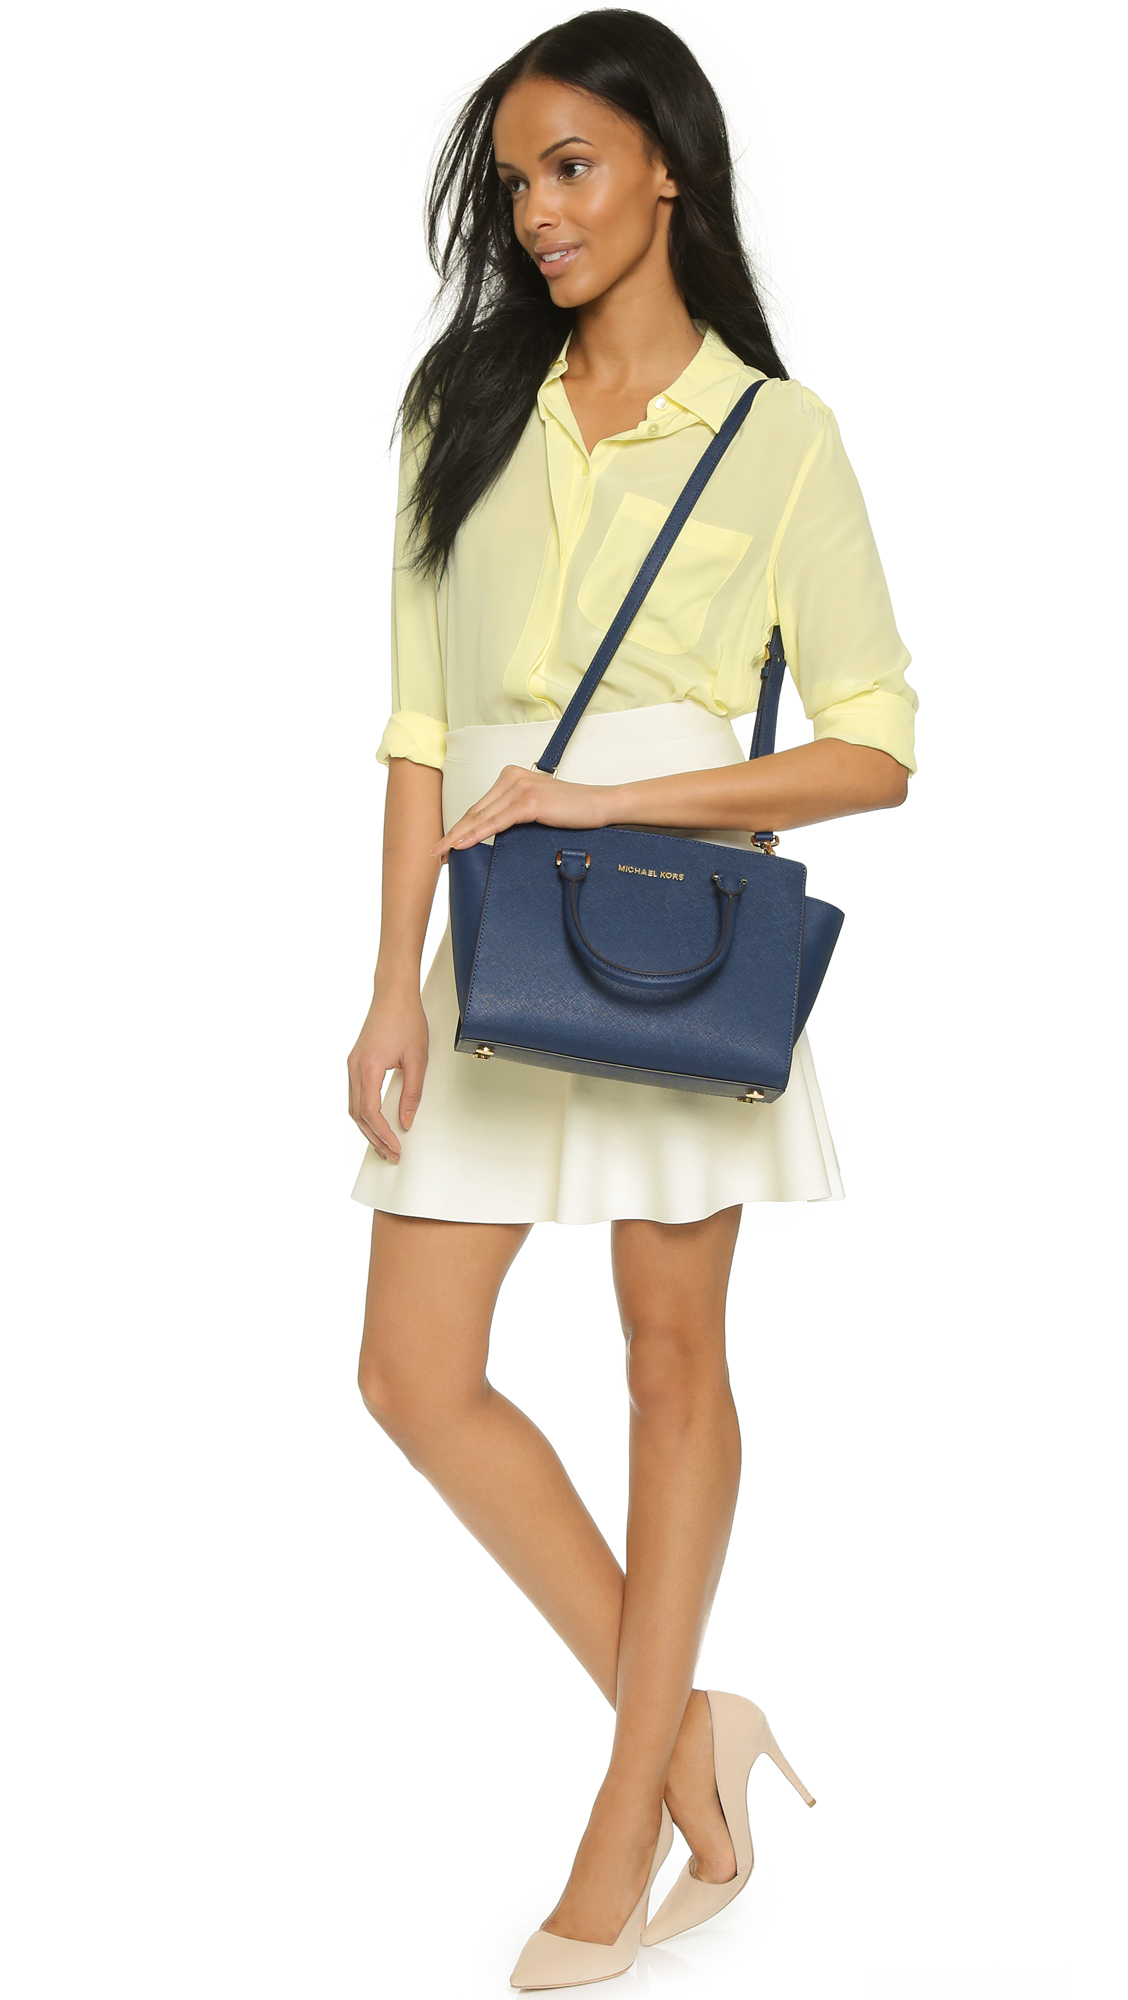 d7c6475ce49d Gallery. Previously sold at: Shopbop · Women's Michael By Michael Kors Selma